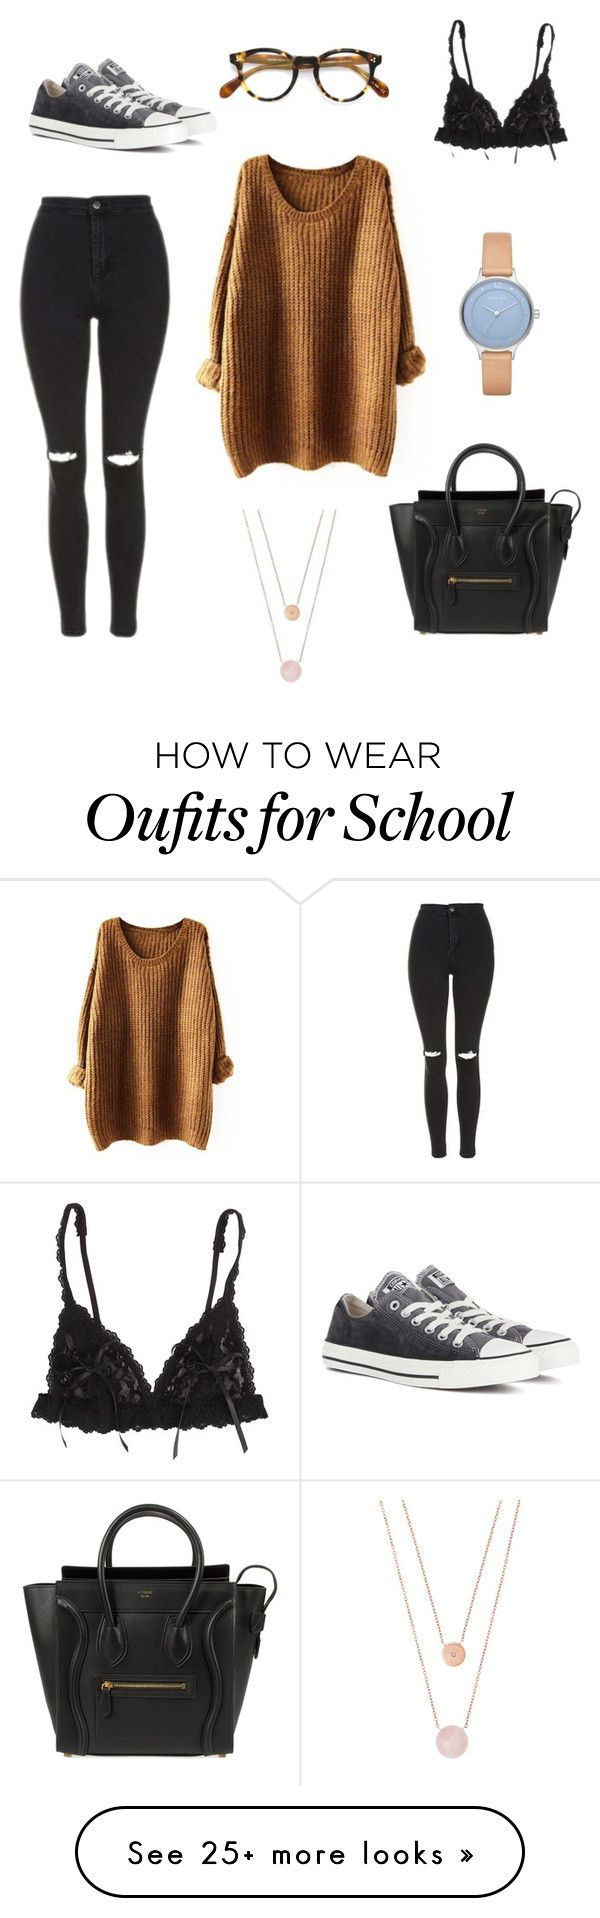 """""""School #2"""" by lalalallalala9 on Polyvore featuring Hanky Panky, Topshop, CÉLINE, Skagen, Michael Kors, Converse and Oliver Peoples"""